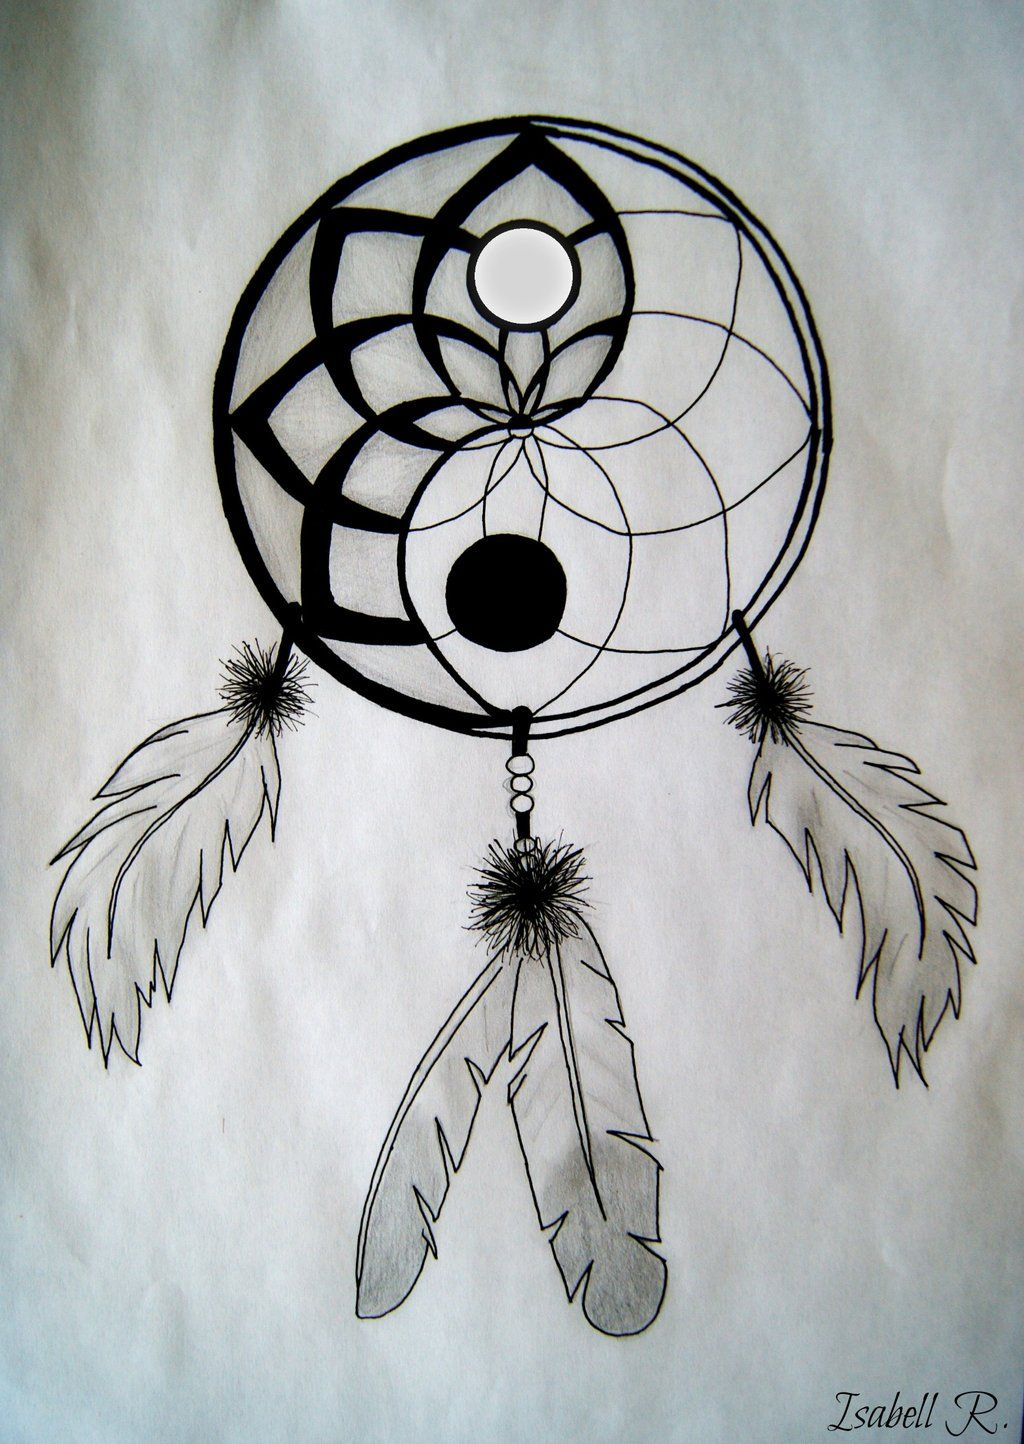 Ying And Yang Dreamcatcher On Deviantart Interior Ideas